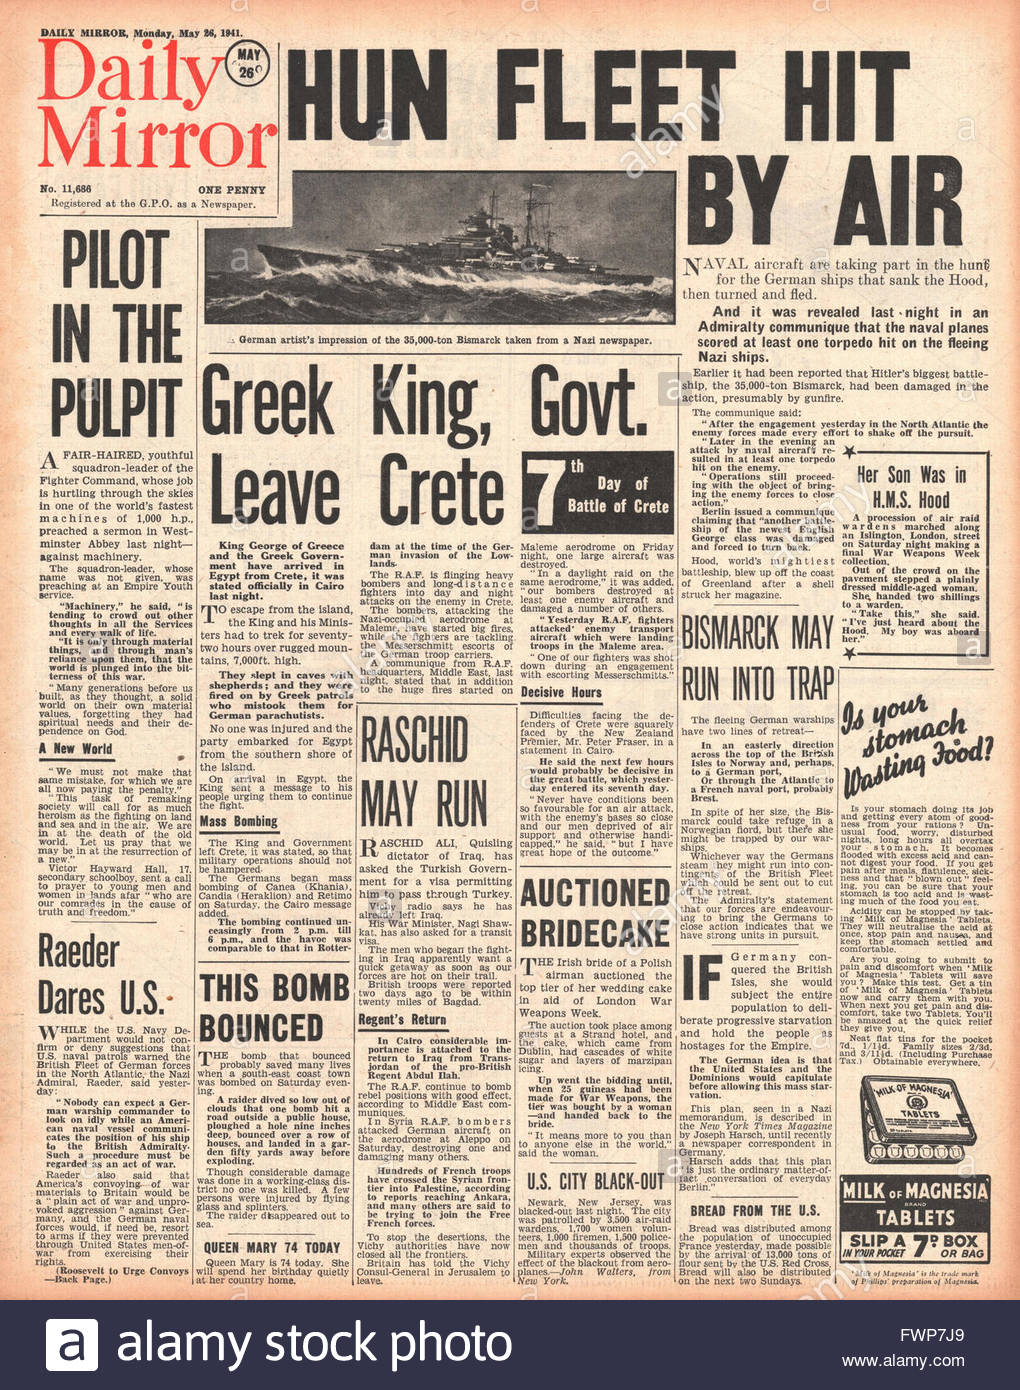 1941 front page Daily Mirror Battle for Crete and Royal Navy Planes torpedo battleship Bismarck - Stock Image